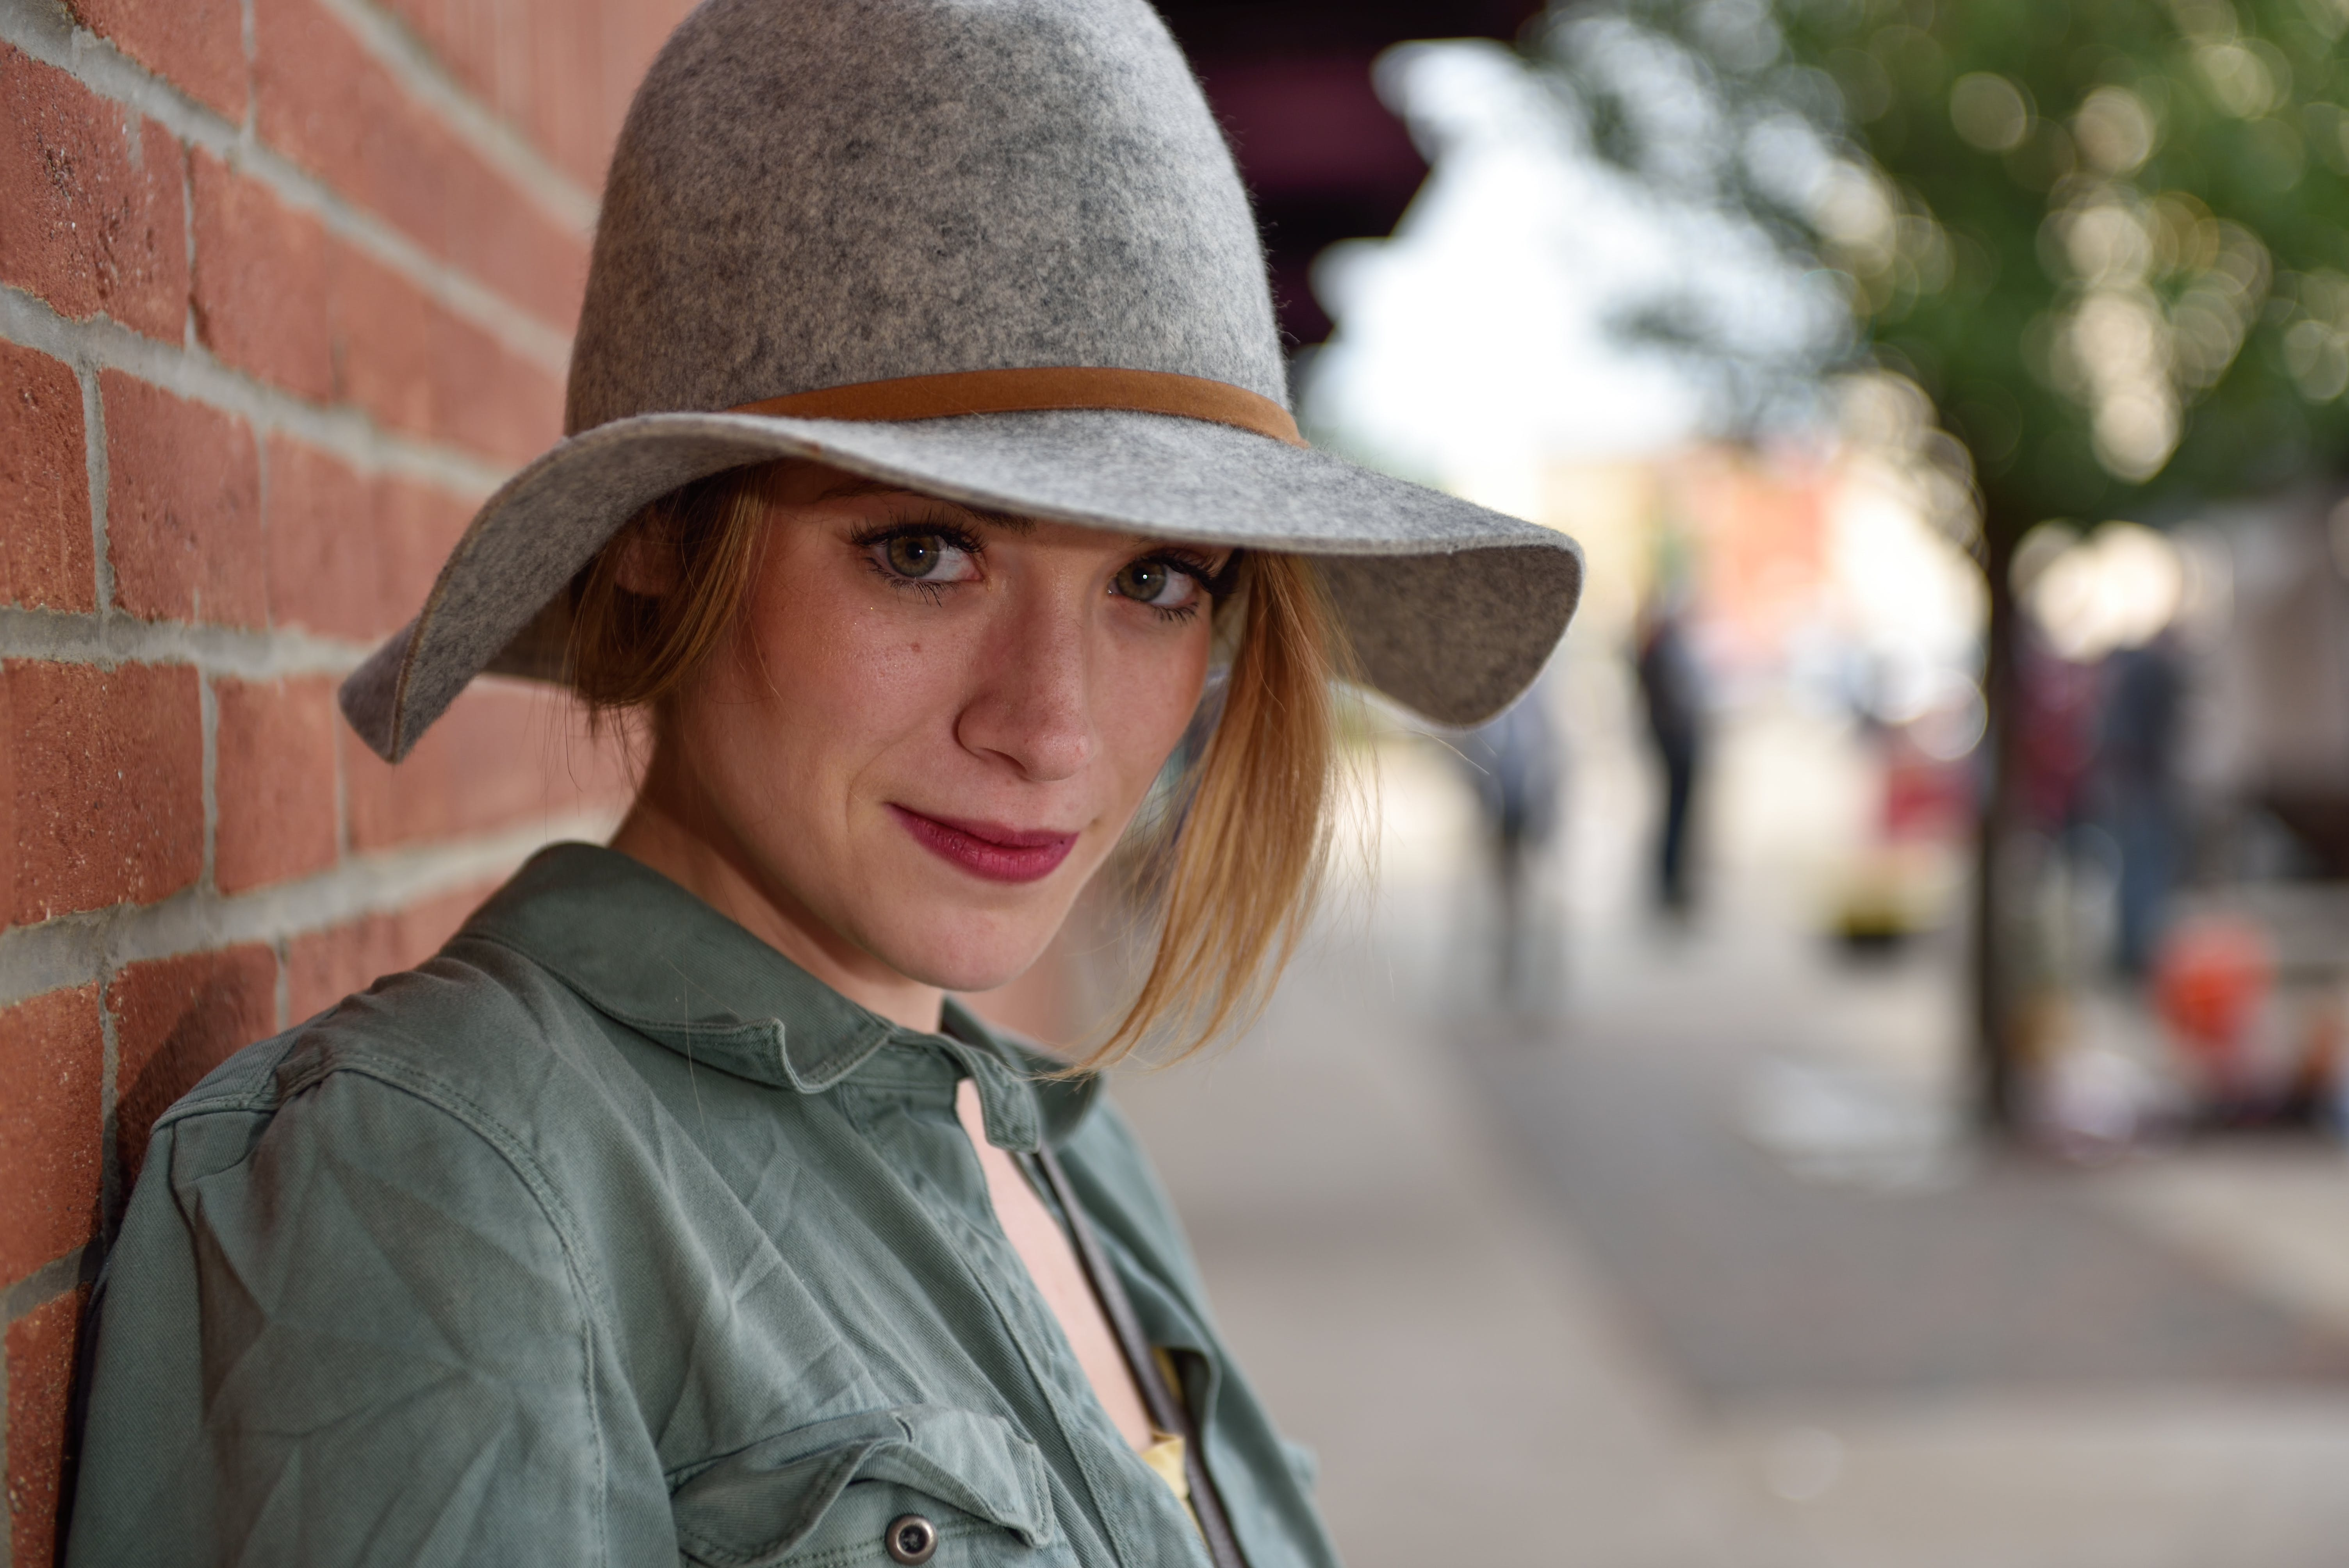 Selective Focus Photography of Woman in Blue Button-up Shirt and Gray Sun Hat Leaning on Brown Brick Wall